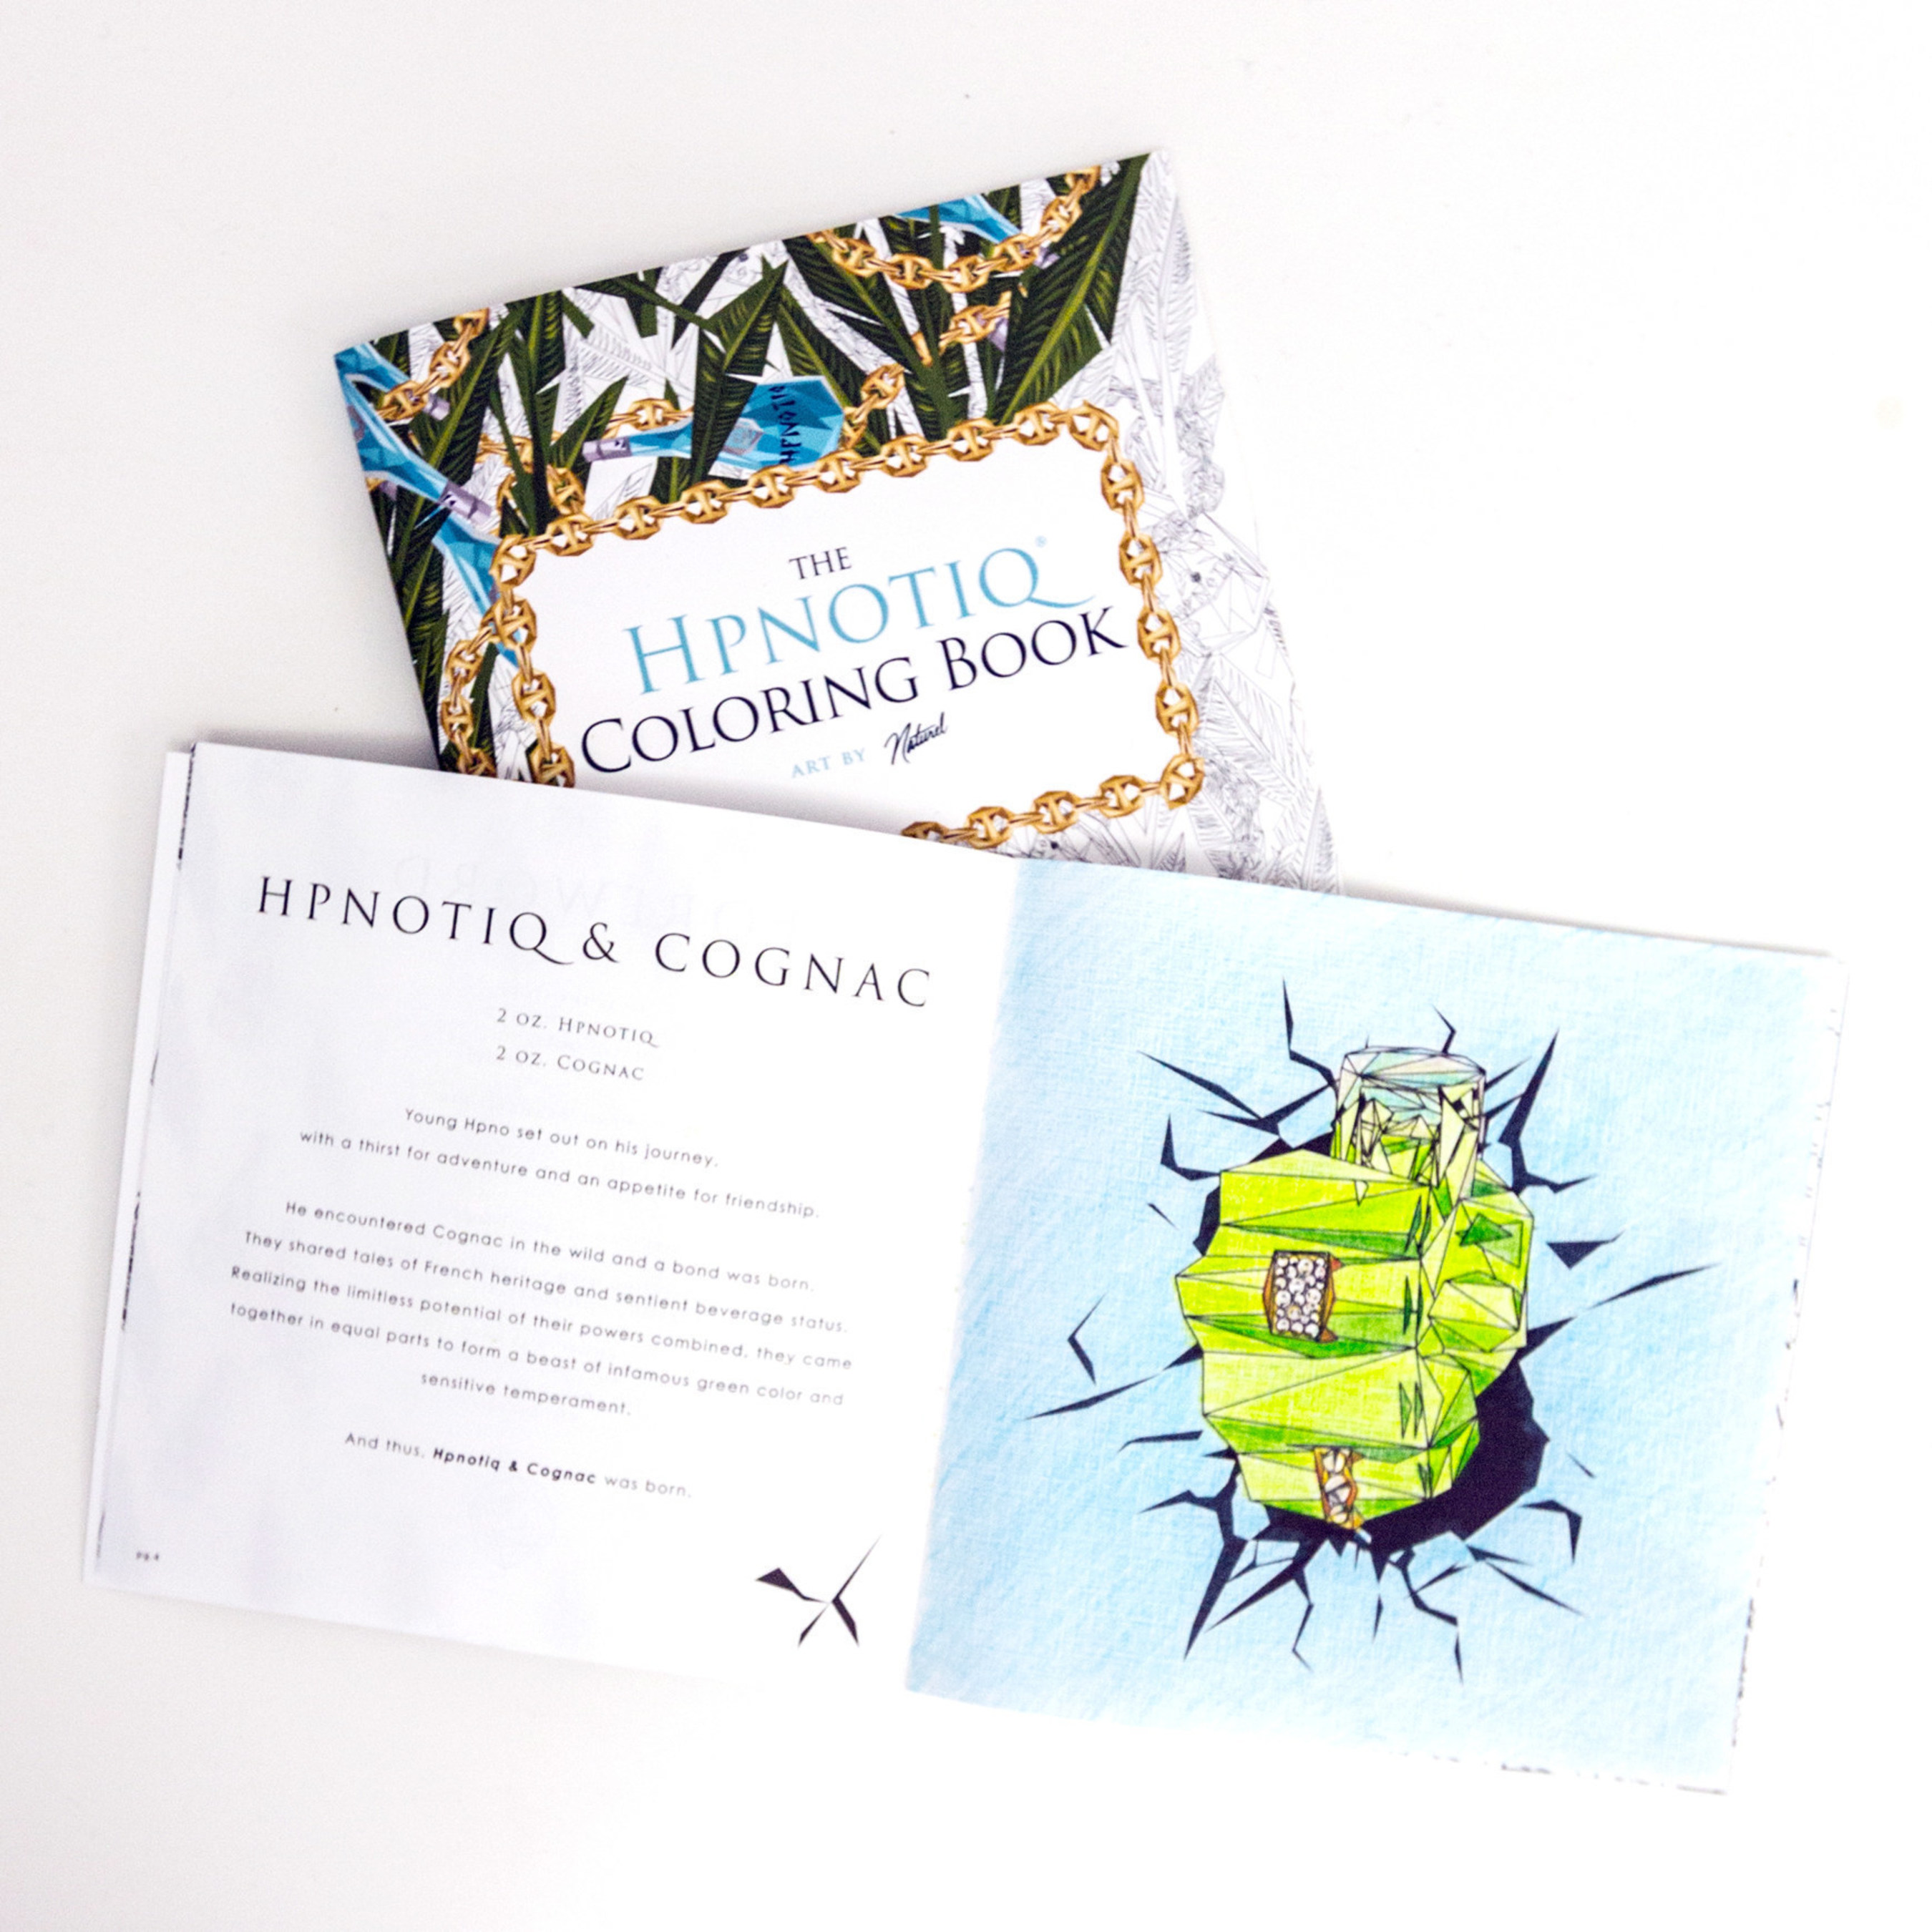 As part of the brand's winter campaign, Hpnotiq partnered with artist Naturel to create a custom adult coloring book, which doubles as a cocktail recipe guide, for influencers, press and fans on social media.